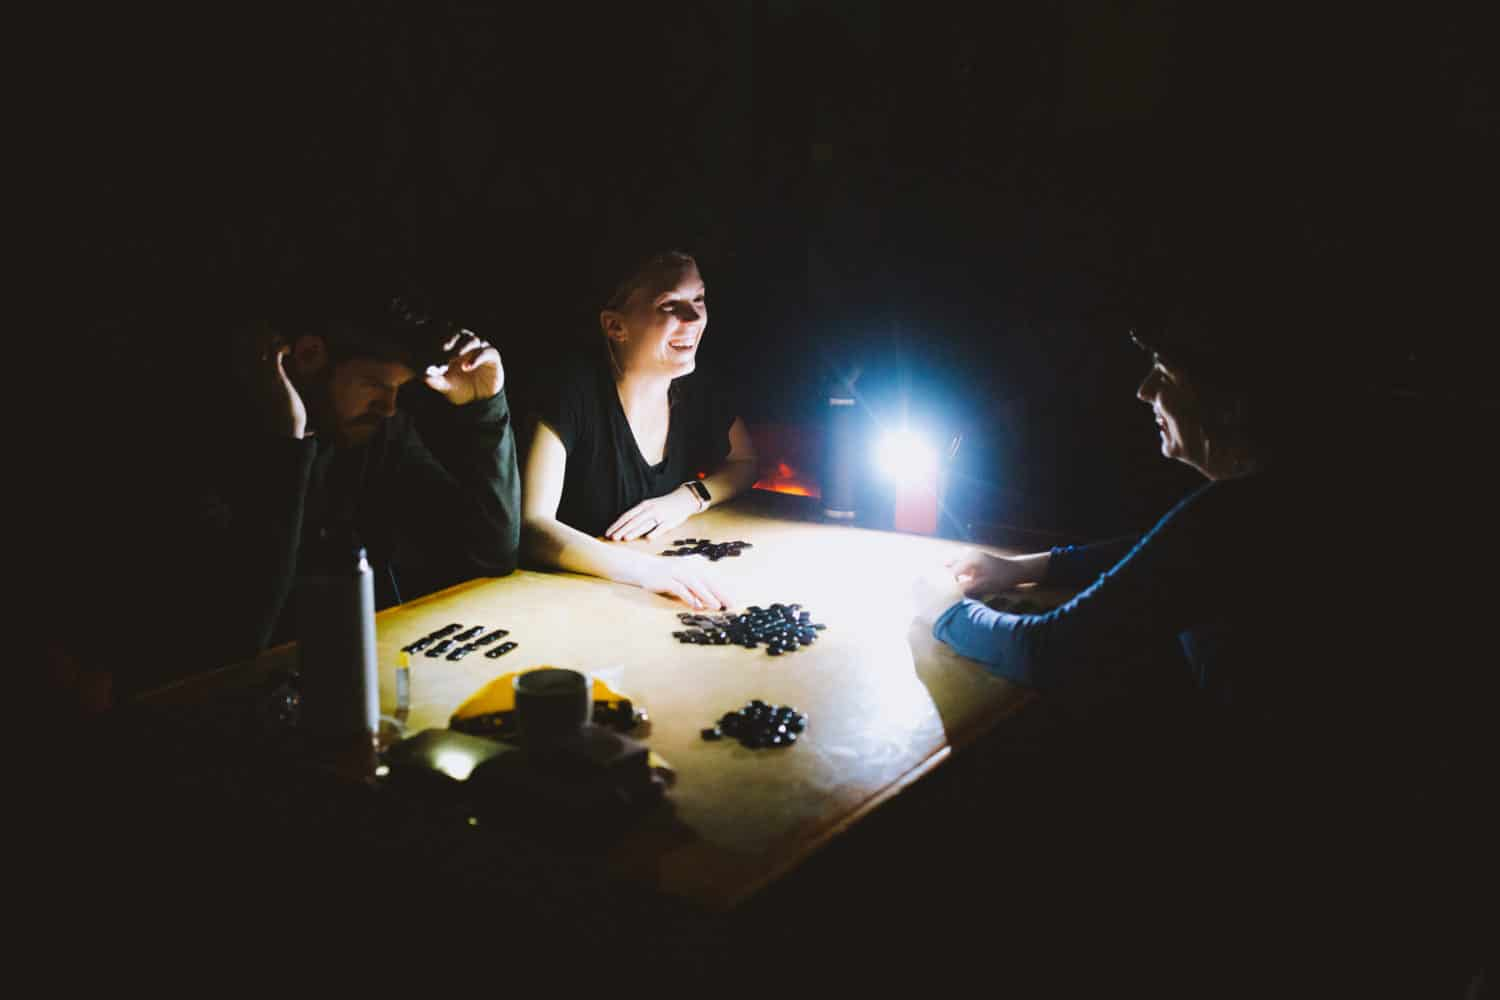 playing games by headlamps